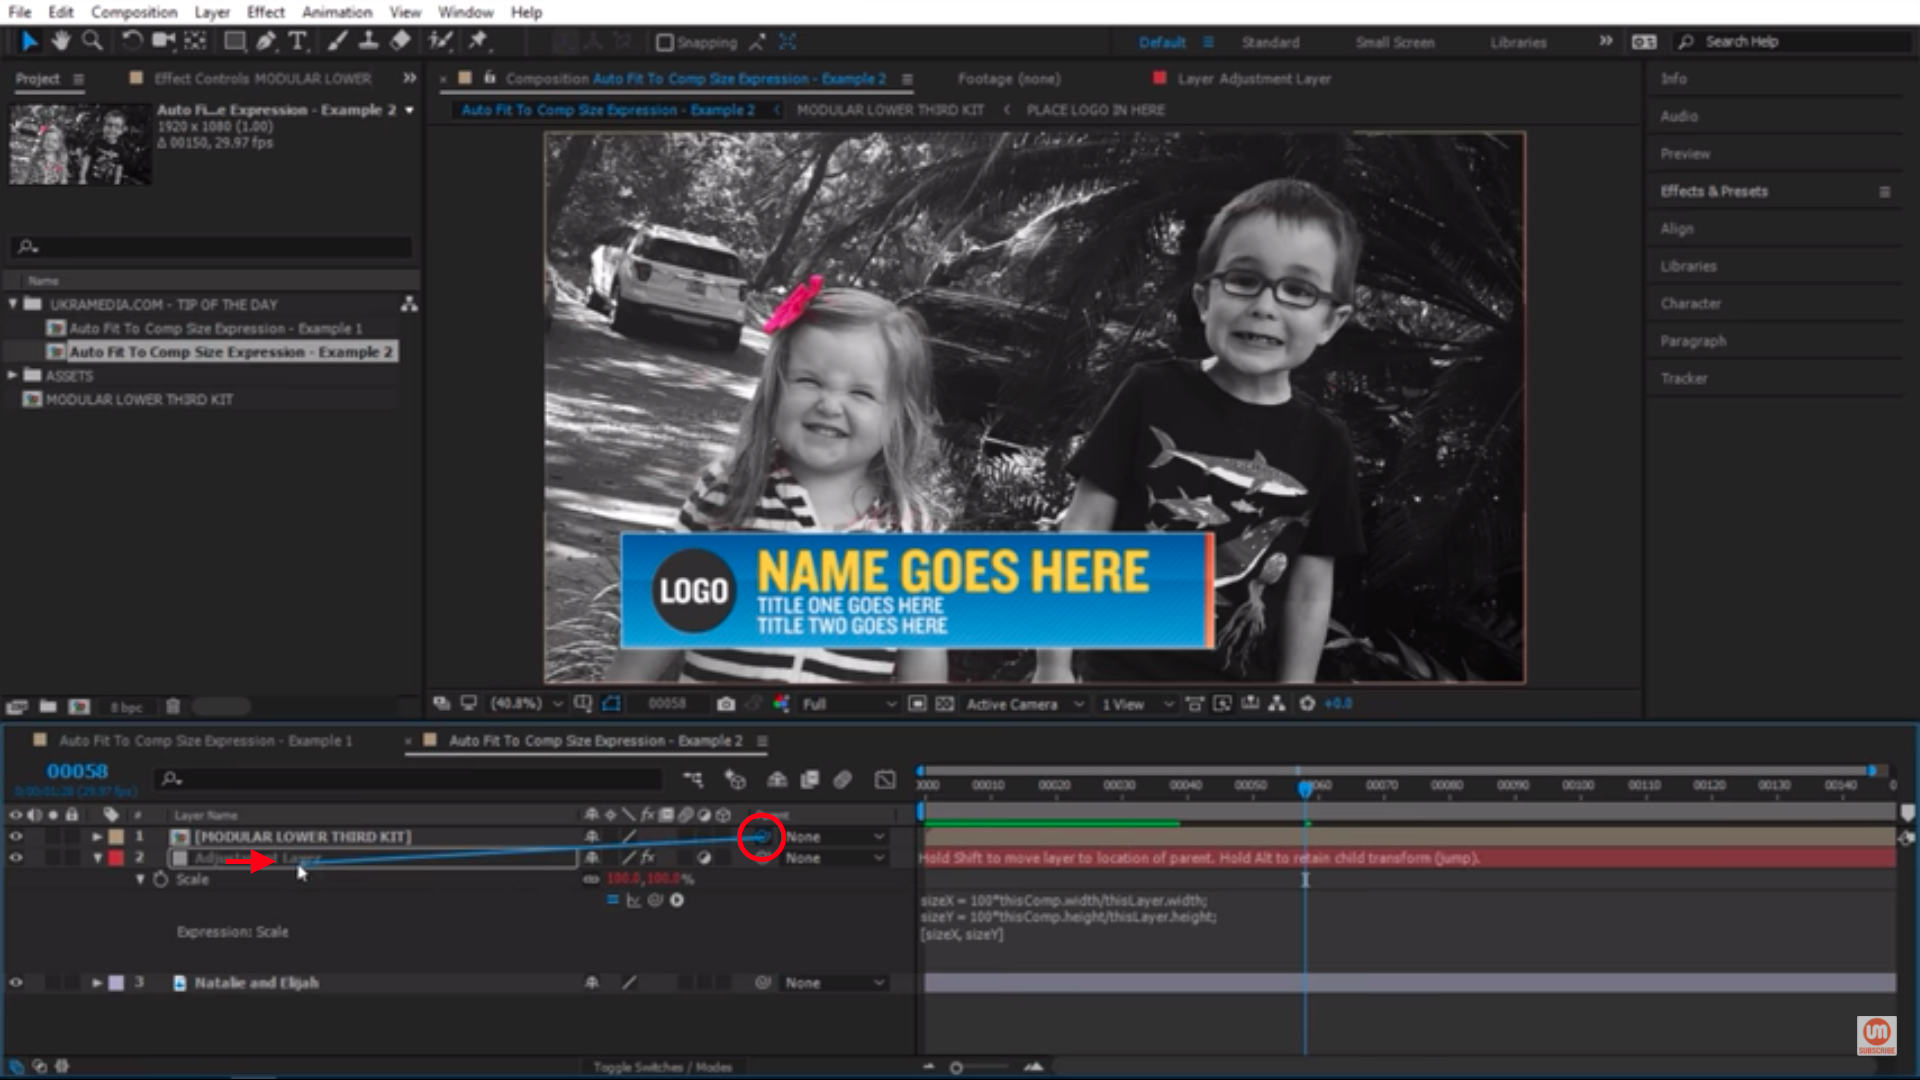 Parenting to adjustment layer in After Effects